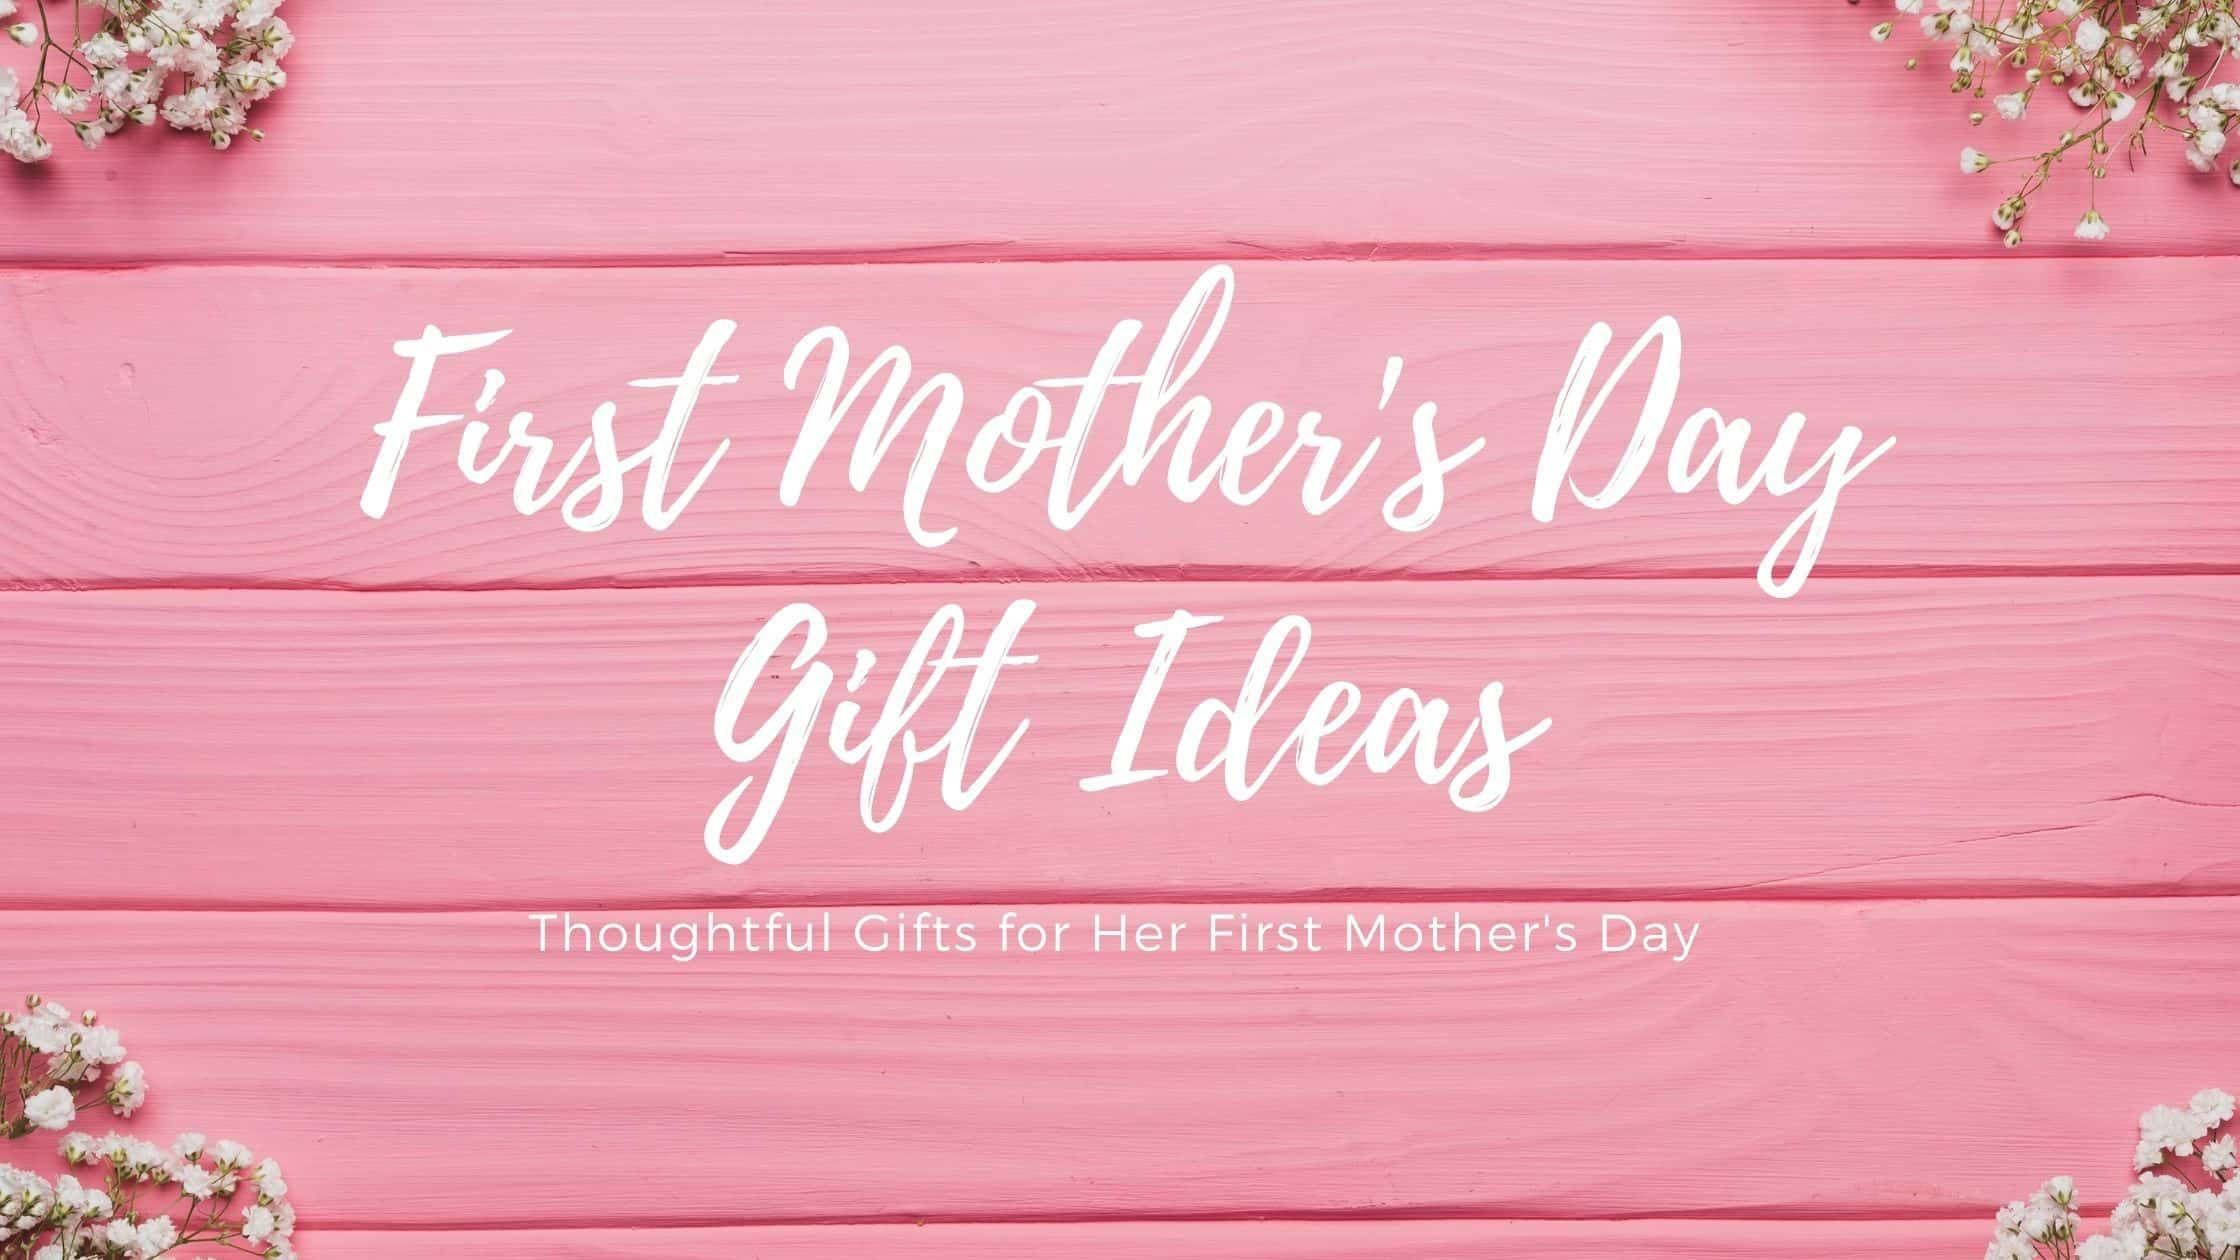 30+ First Mother's Day Gift Ideas For the New Mom (2021)